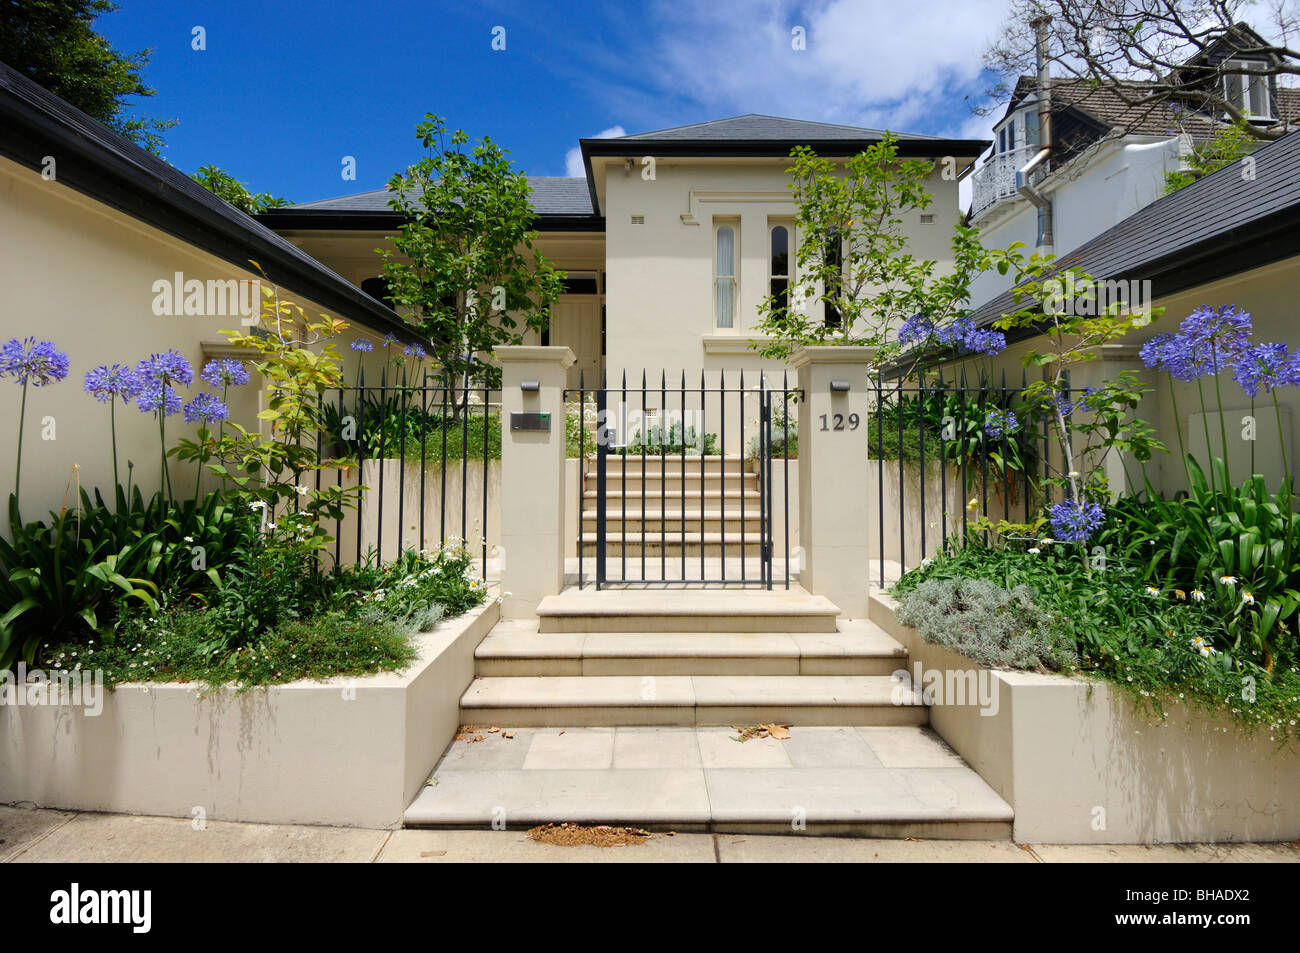 The Formal Front Courtyard Garden With Steps And Gate Of A